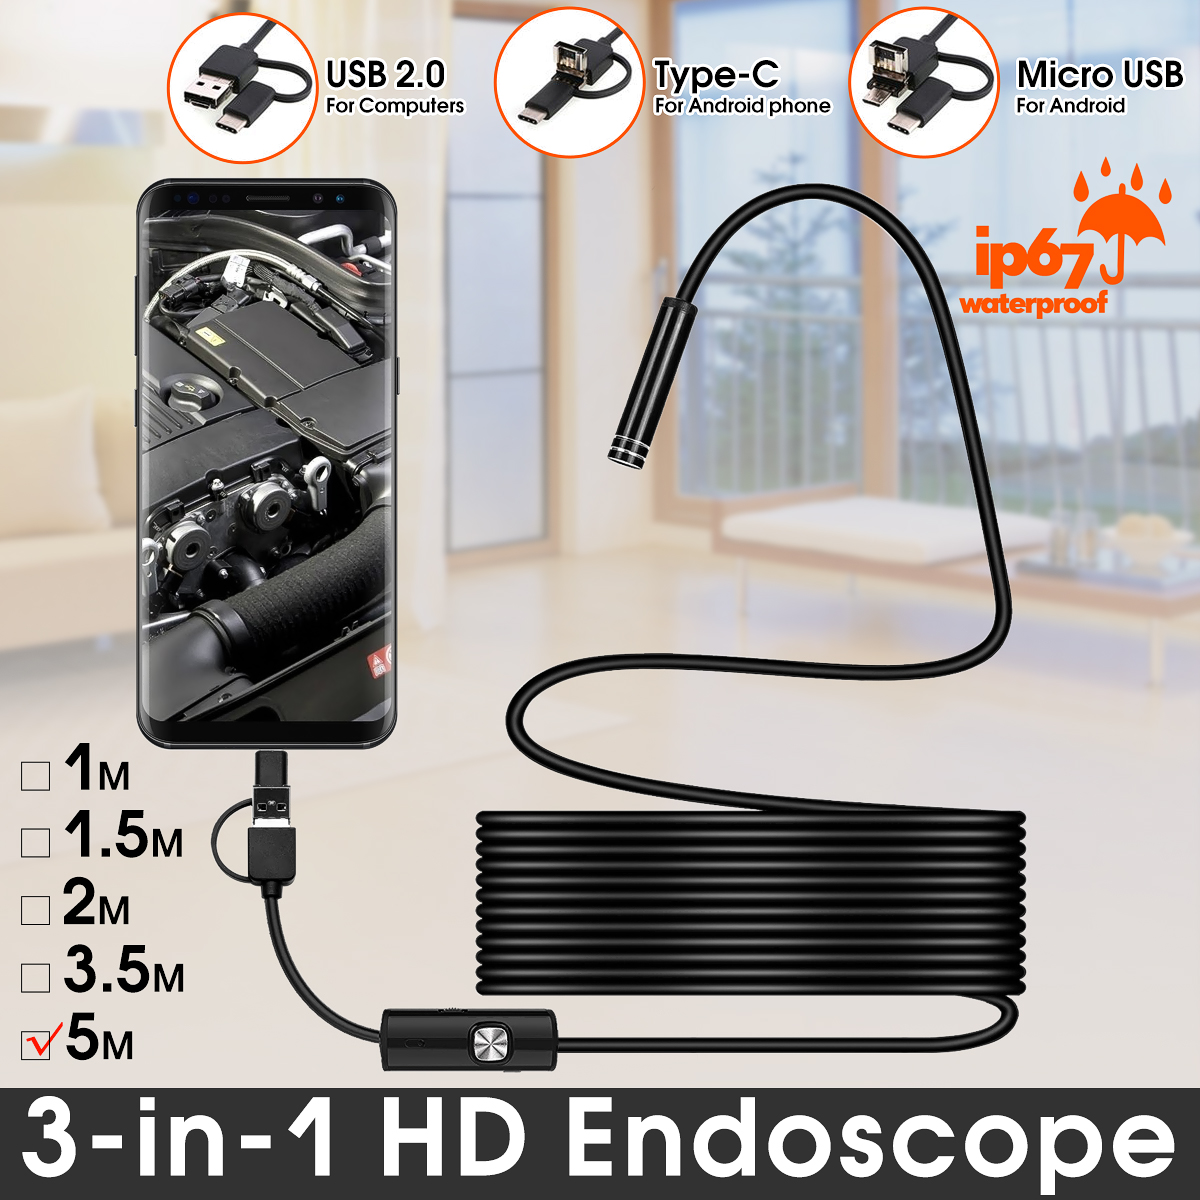 Bakeey 3 in 1 7mm 6Led Type C Micro USB Endoscope Inspection Camera Soft Cable for Android PC